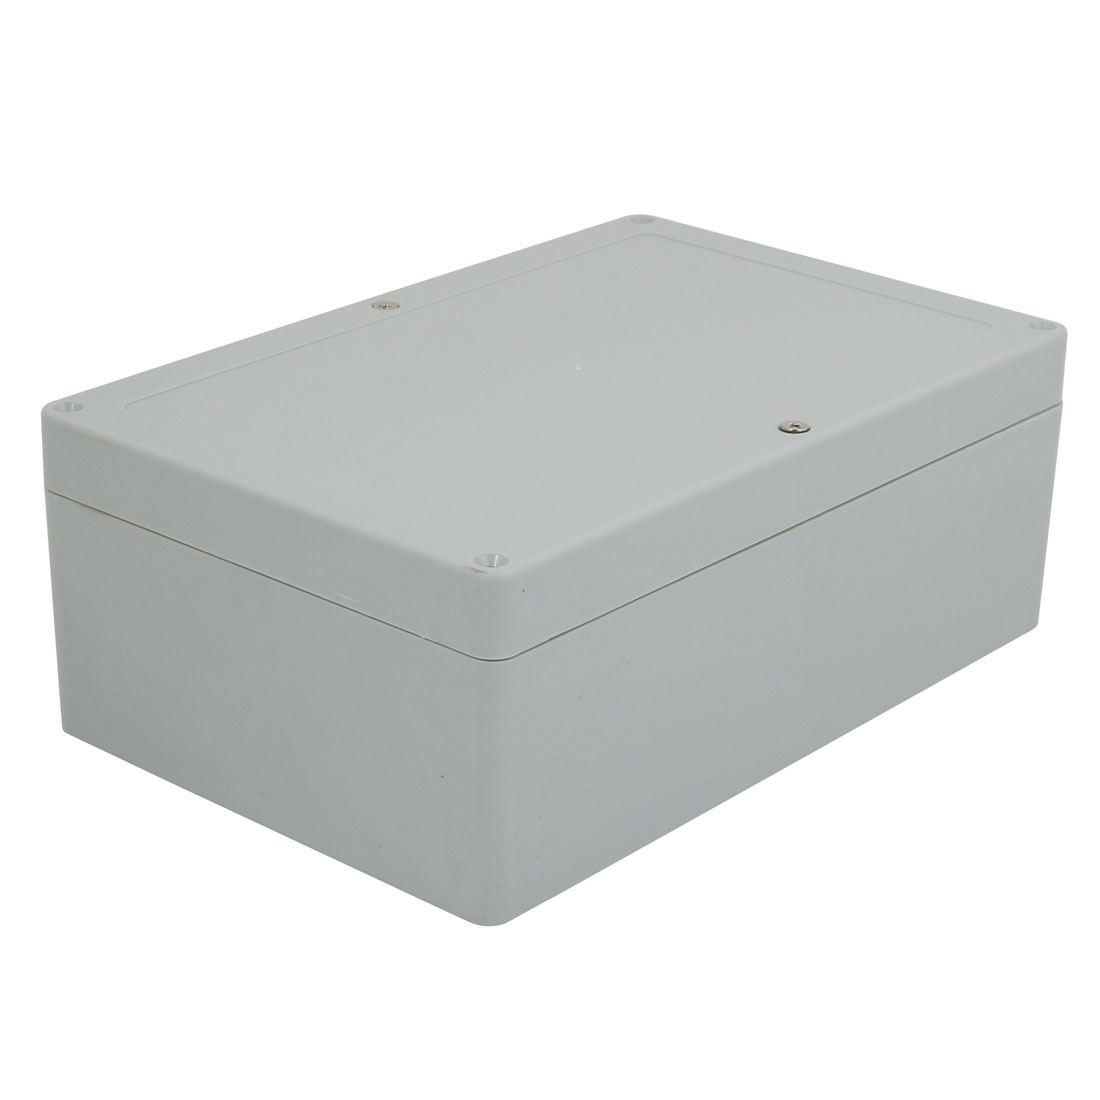 230mmx150mmx87mm Electronic ABS Plastic DIY Junction Box Enclosure Case Gray